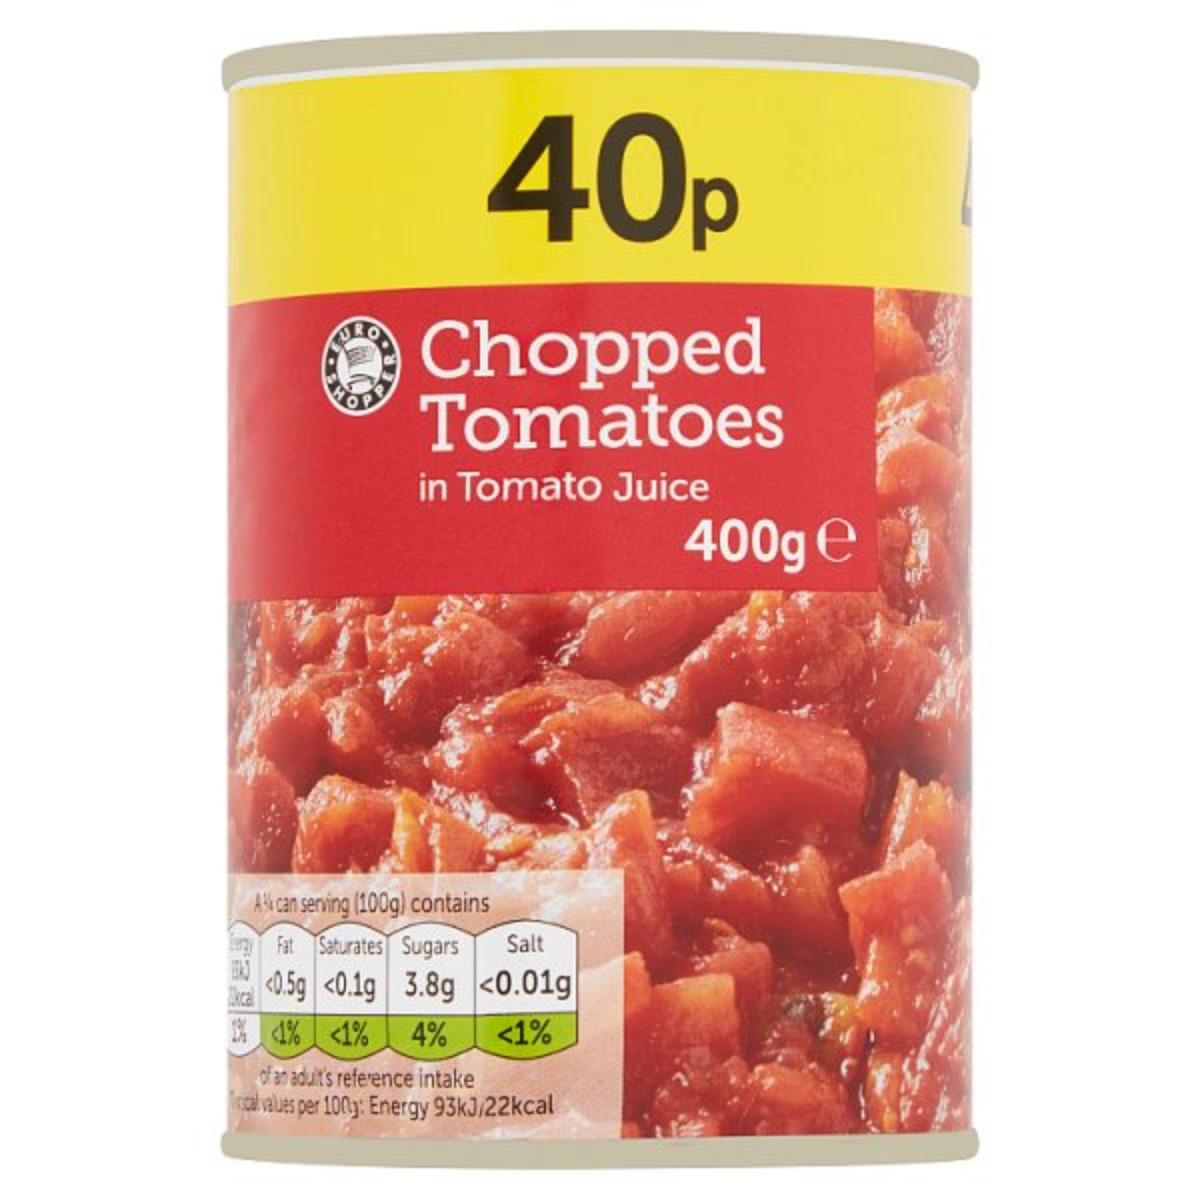 Euro Shopper Chopped Tomatoes 2x400g